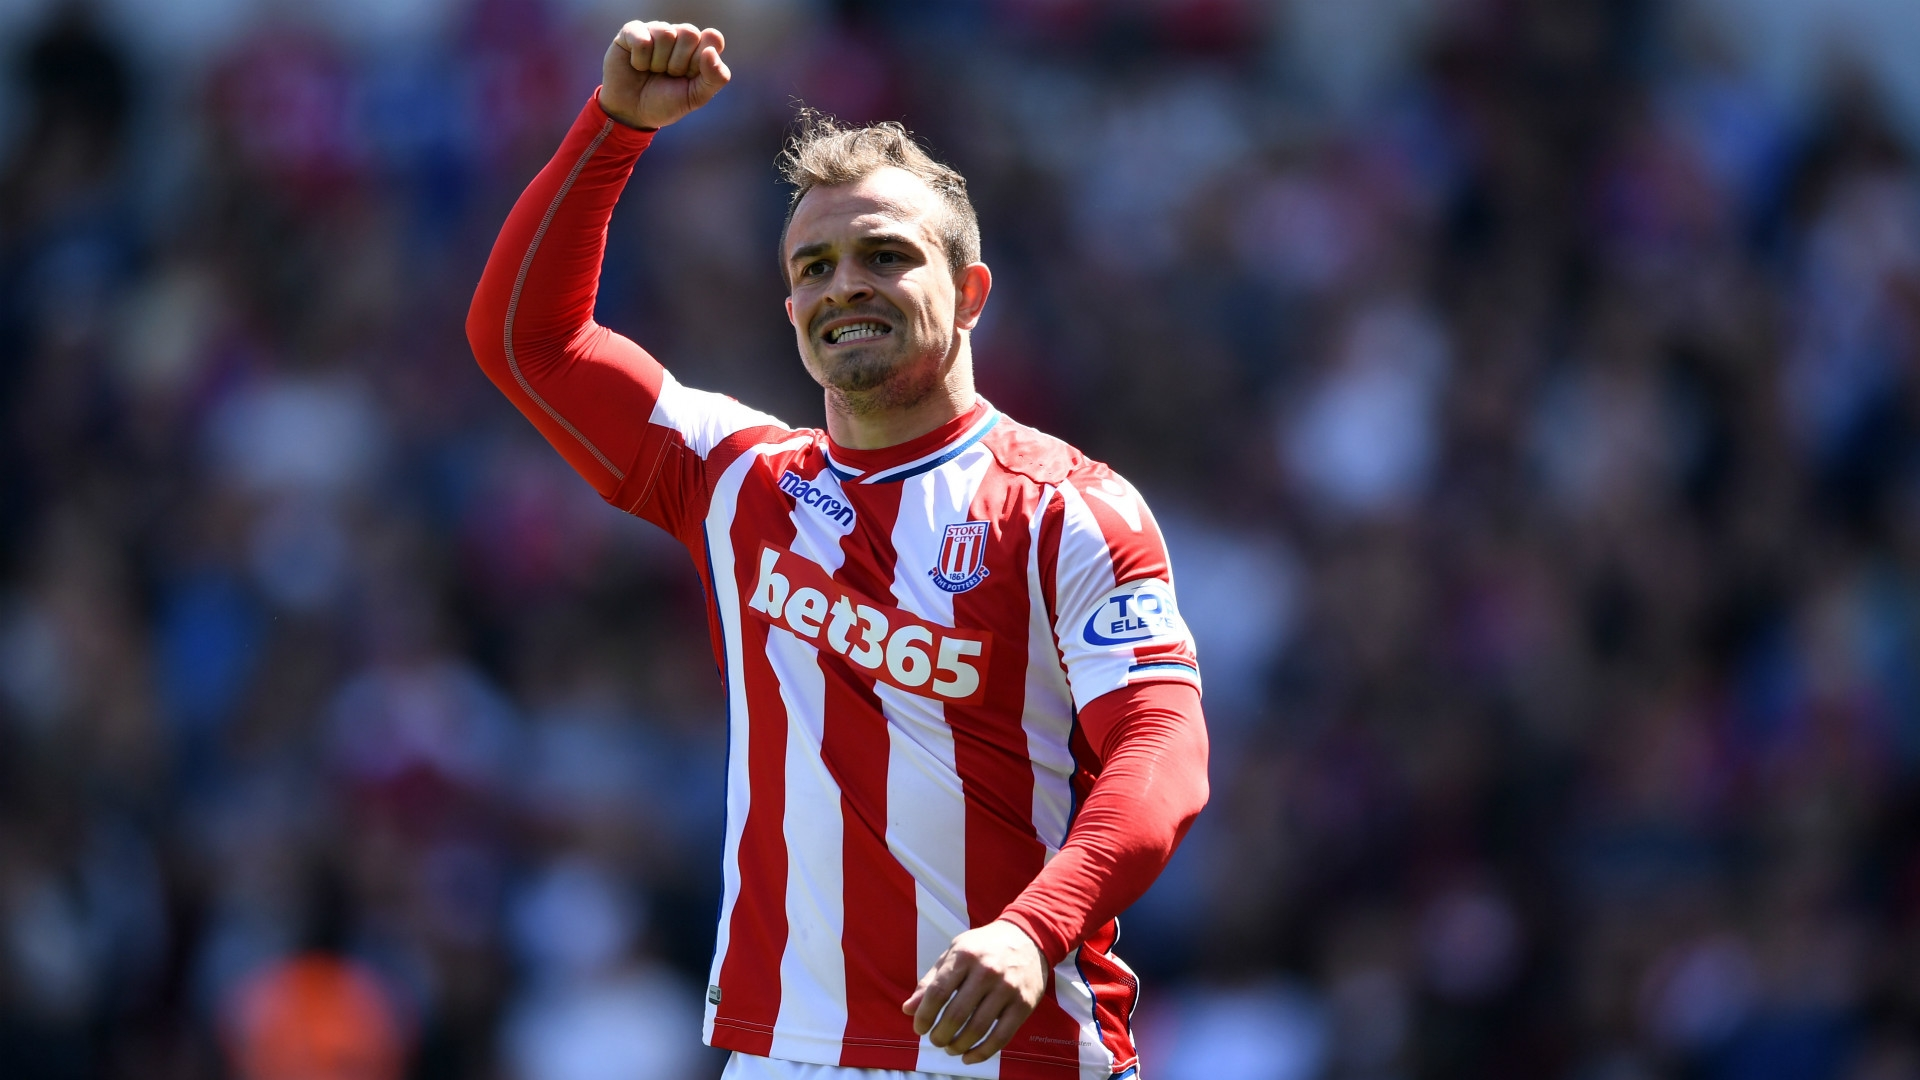 Xherdan Shaqiri - Stoke City, Switzerland